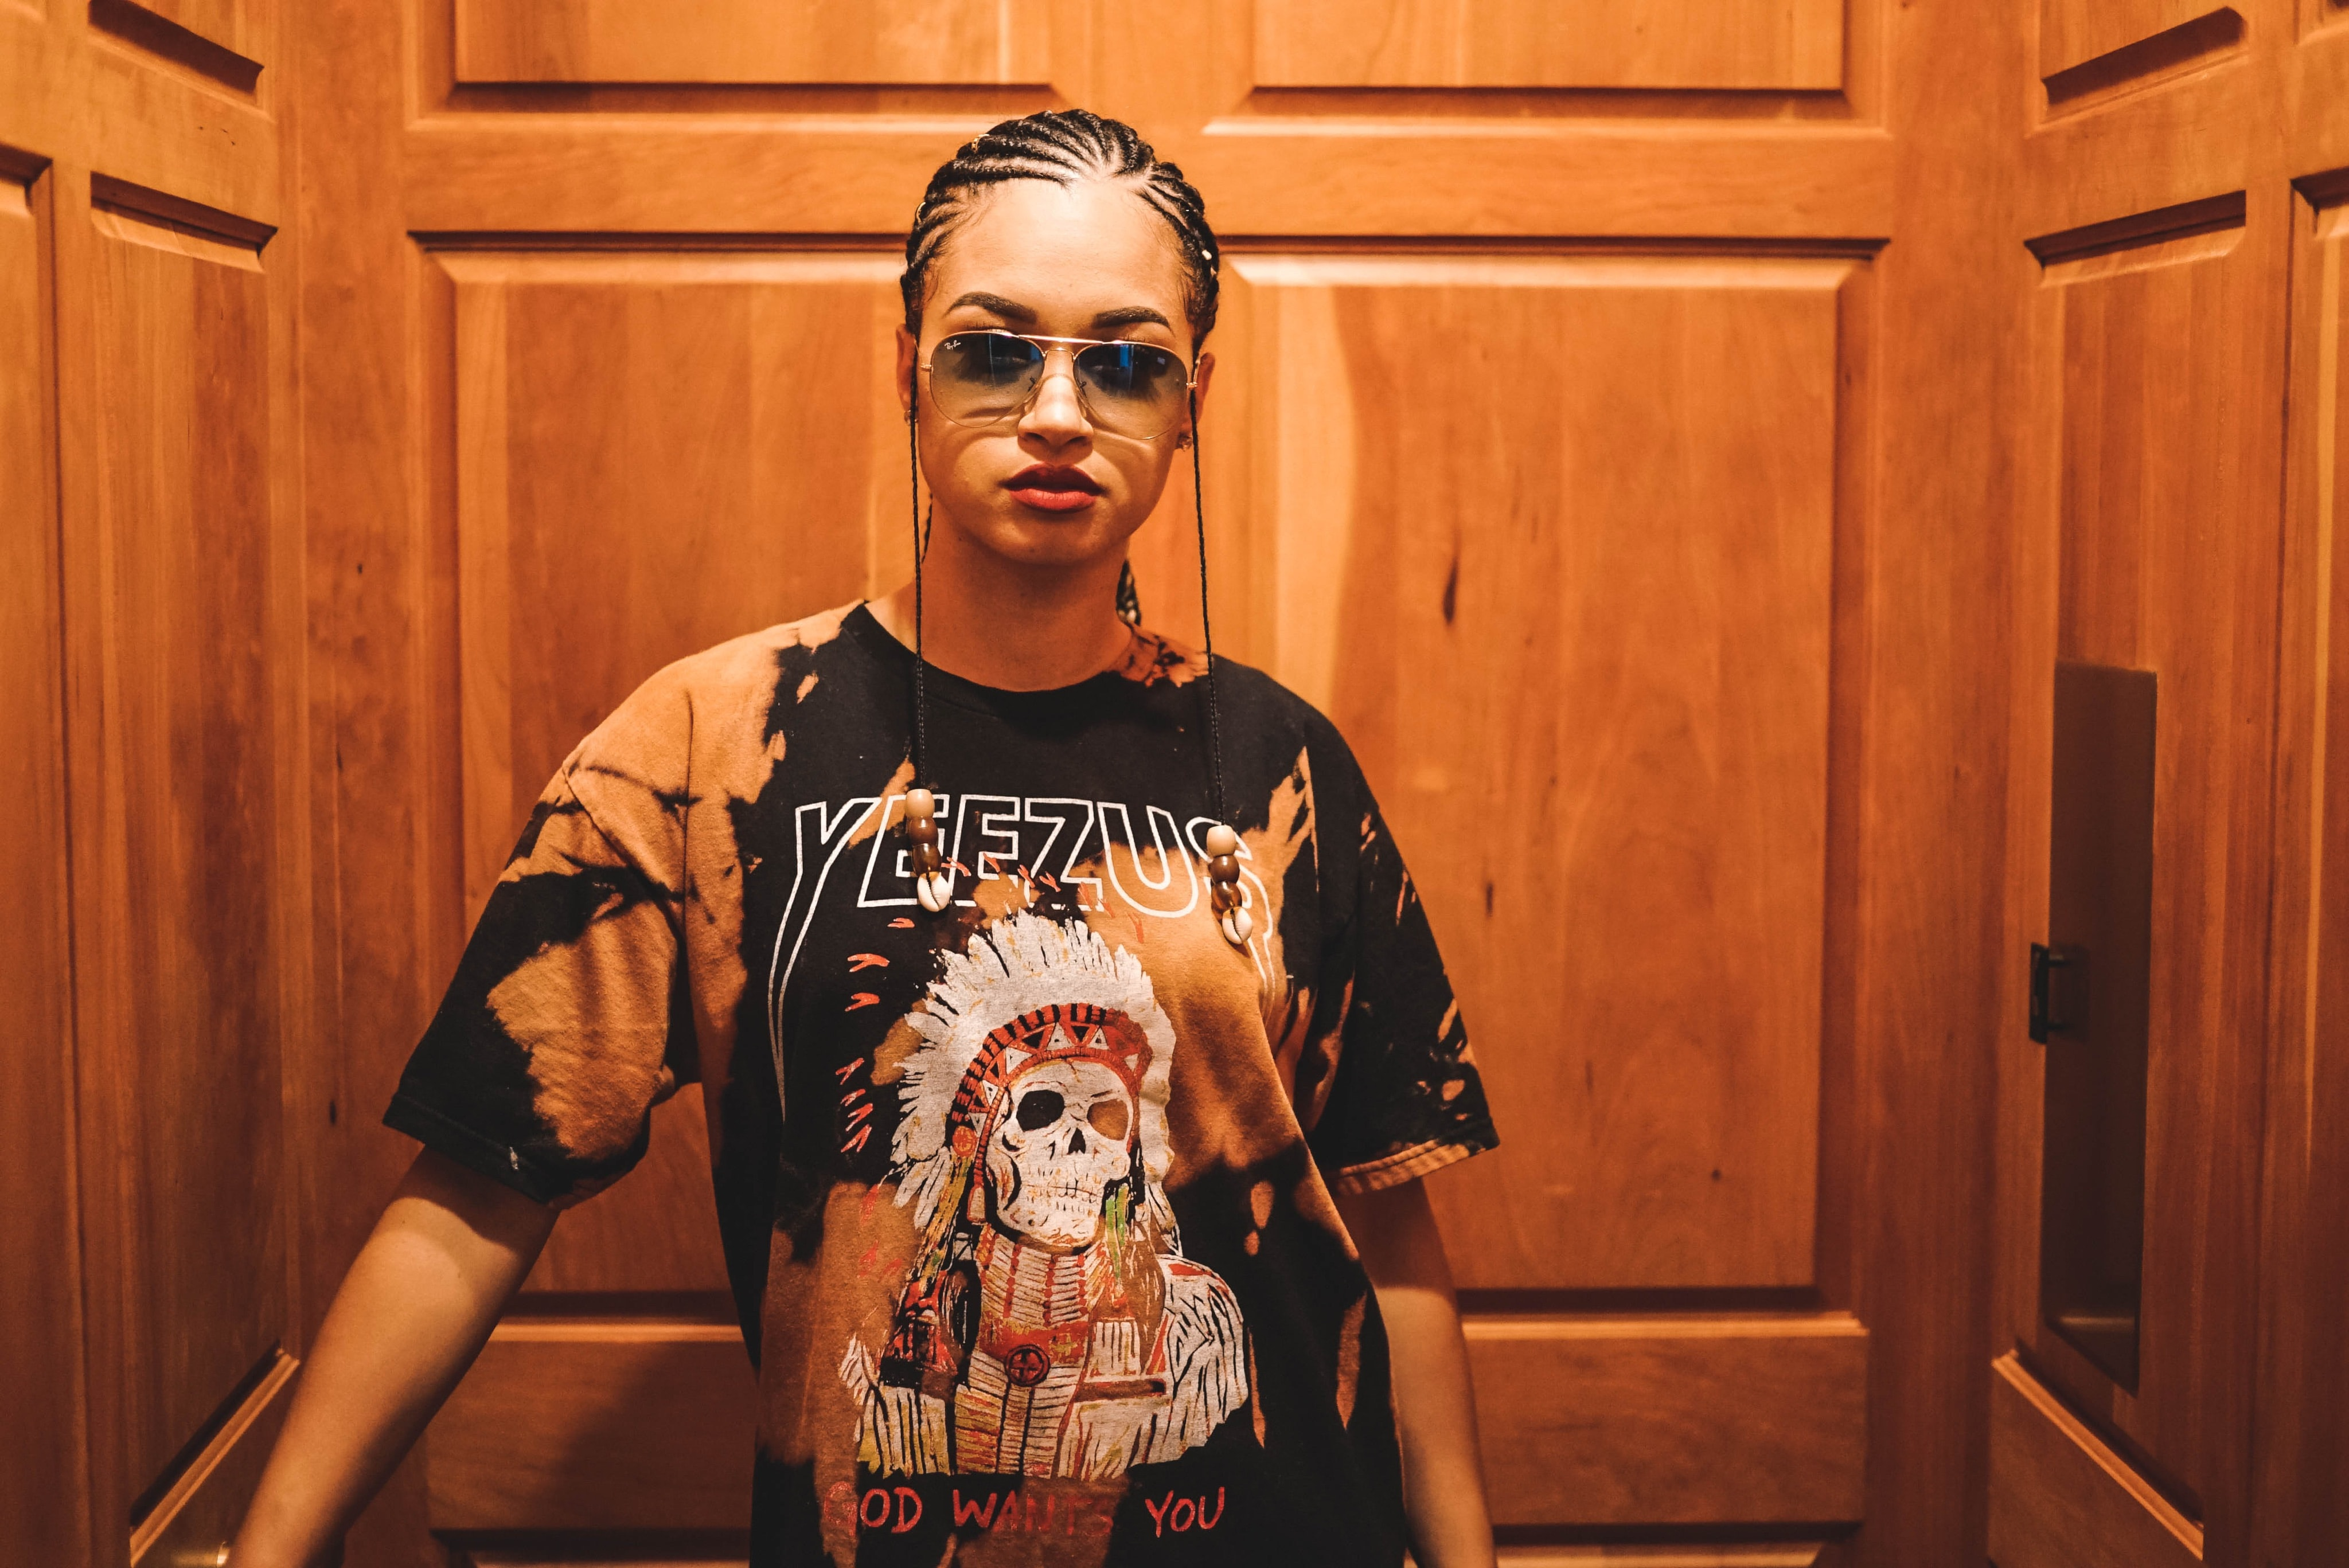 Trendy woman with cornrow braids and a yeezus t-shirt in an elevator